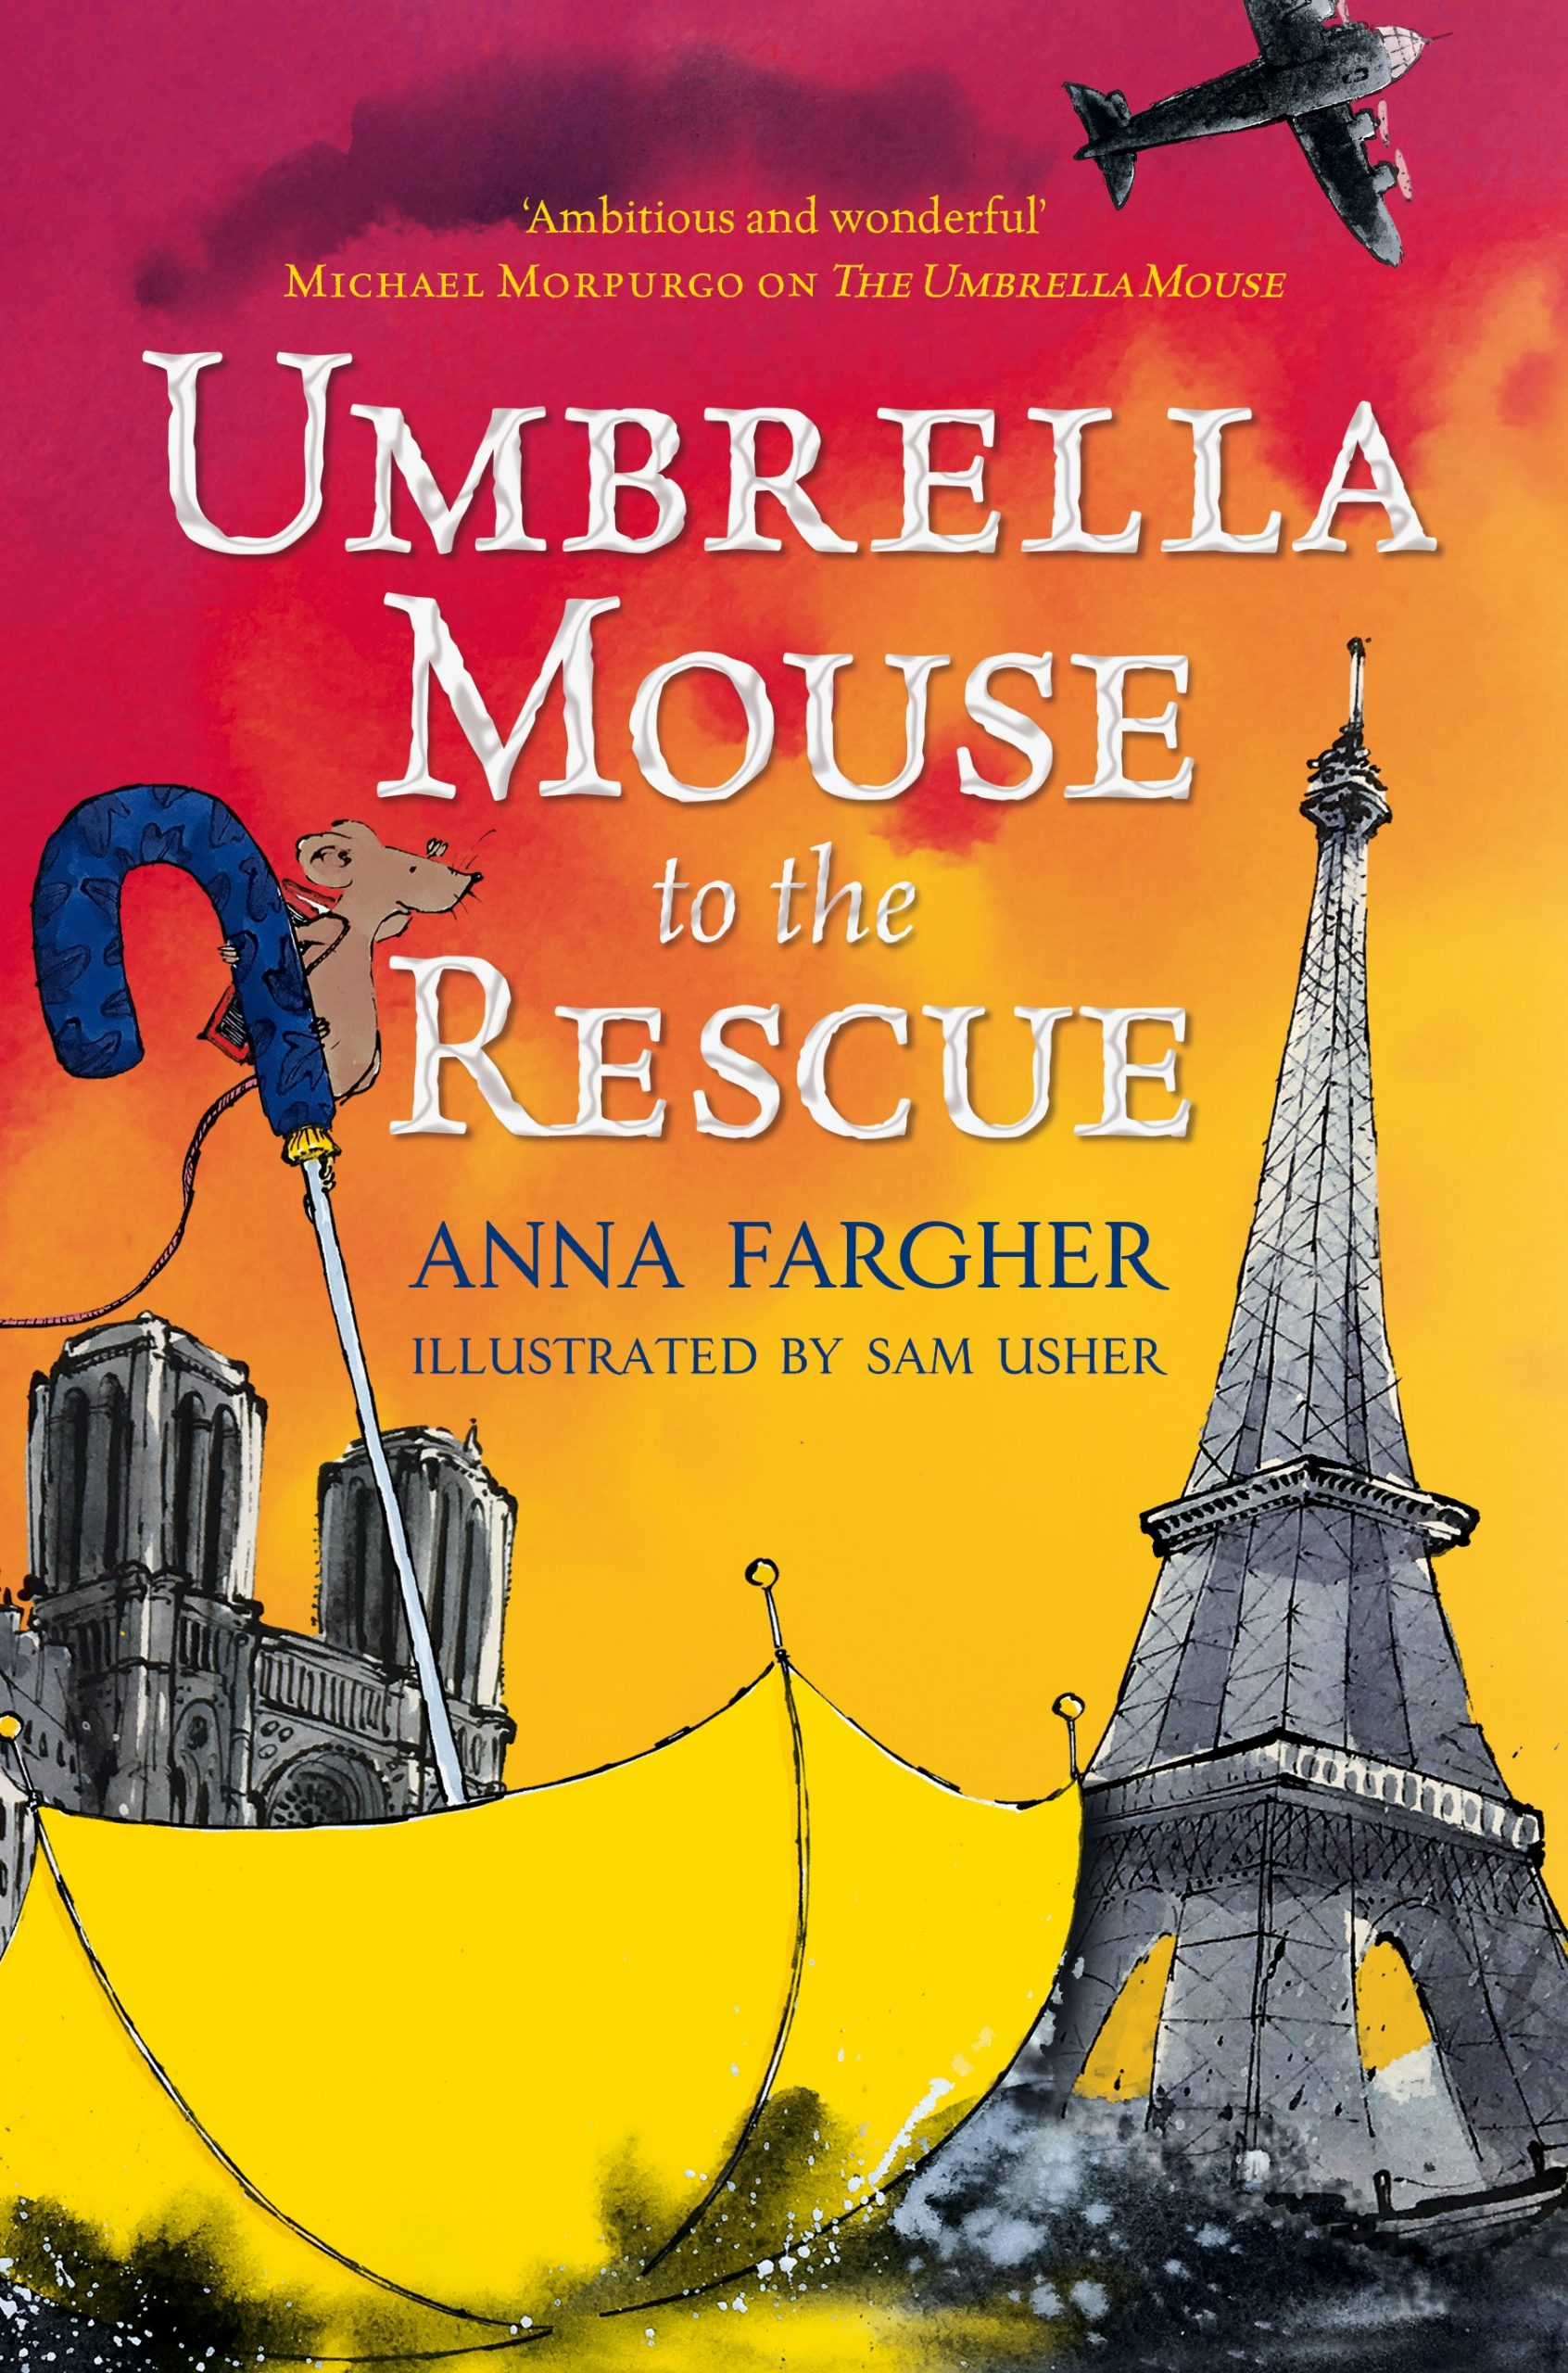 The Umbrella Mouse to the Rescue